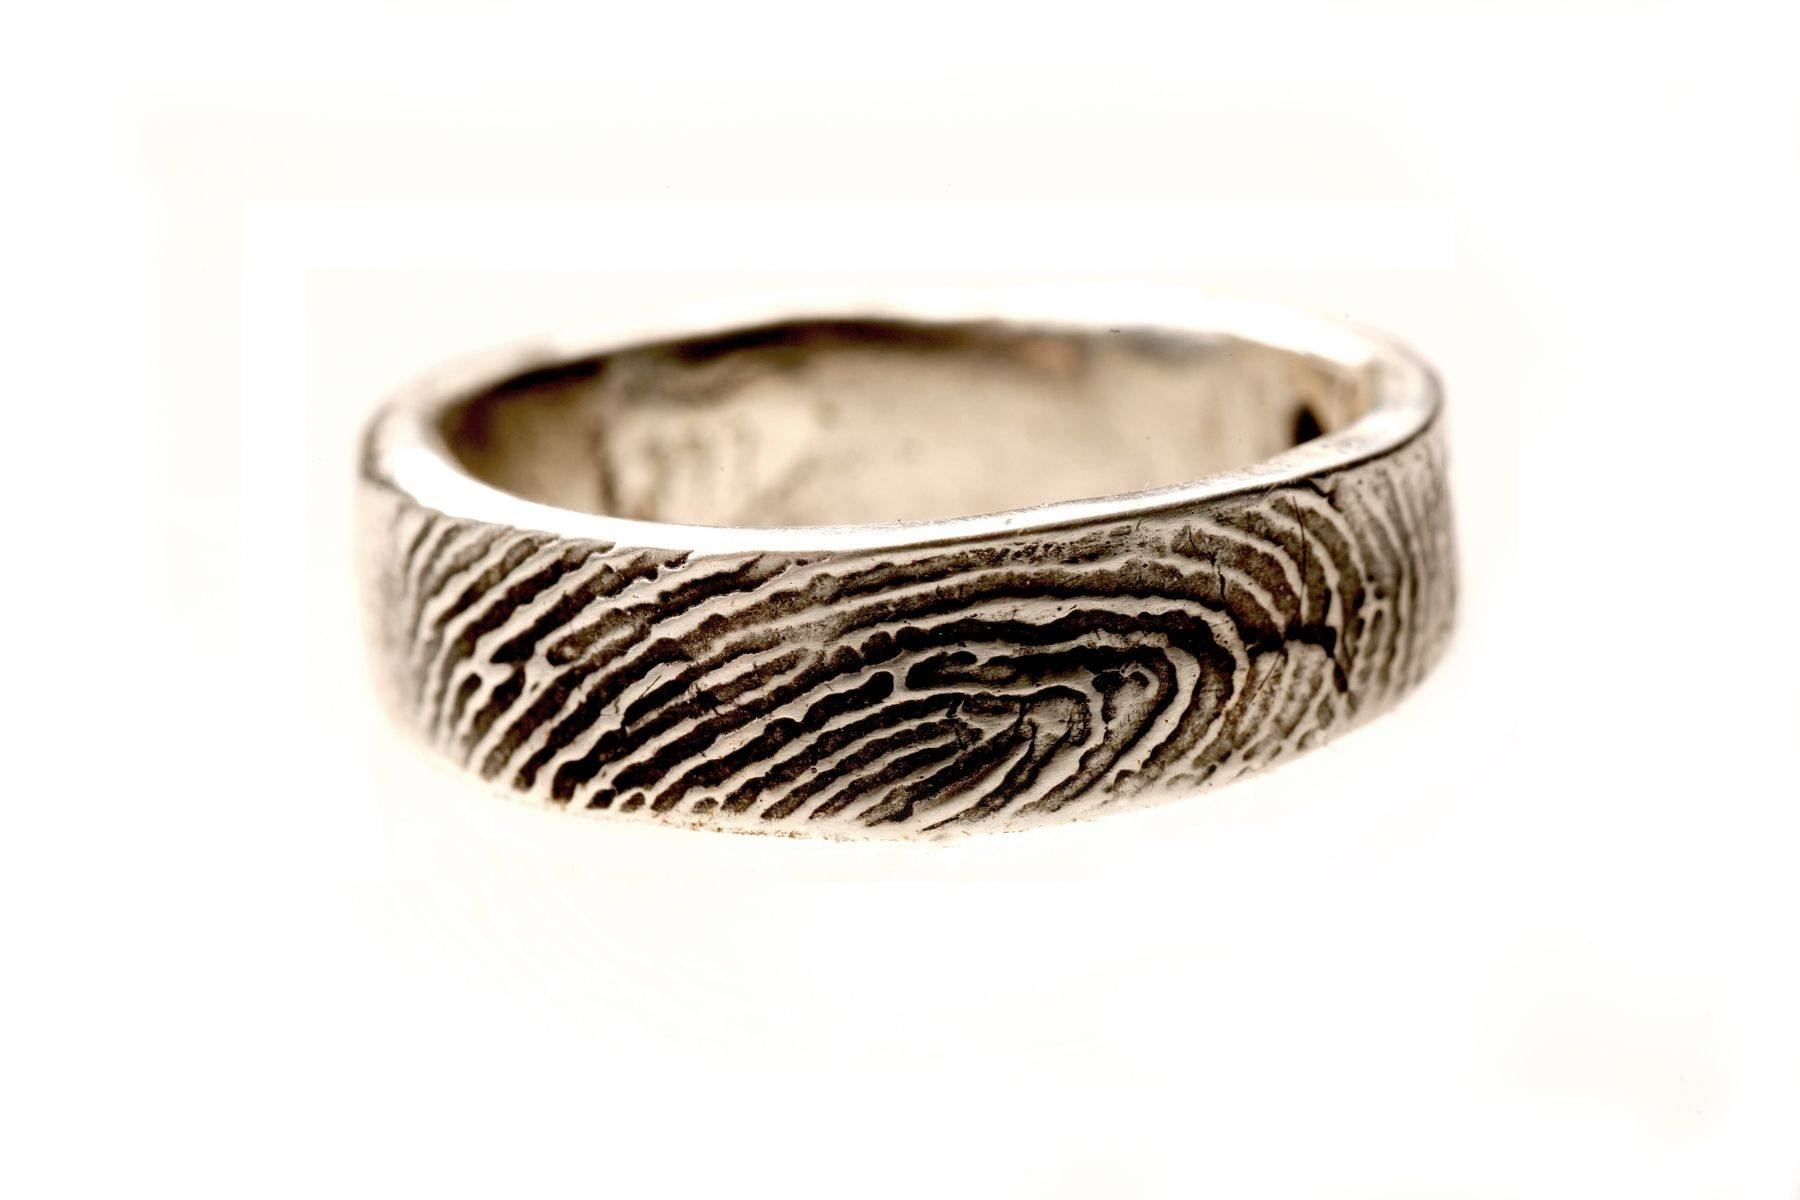 Wedding Rings : Empty Open Woman Hand On White Background Regarding Fingerprint Wedding Bands (View 15 of 15)